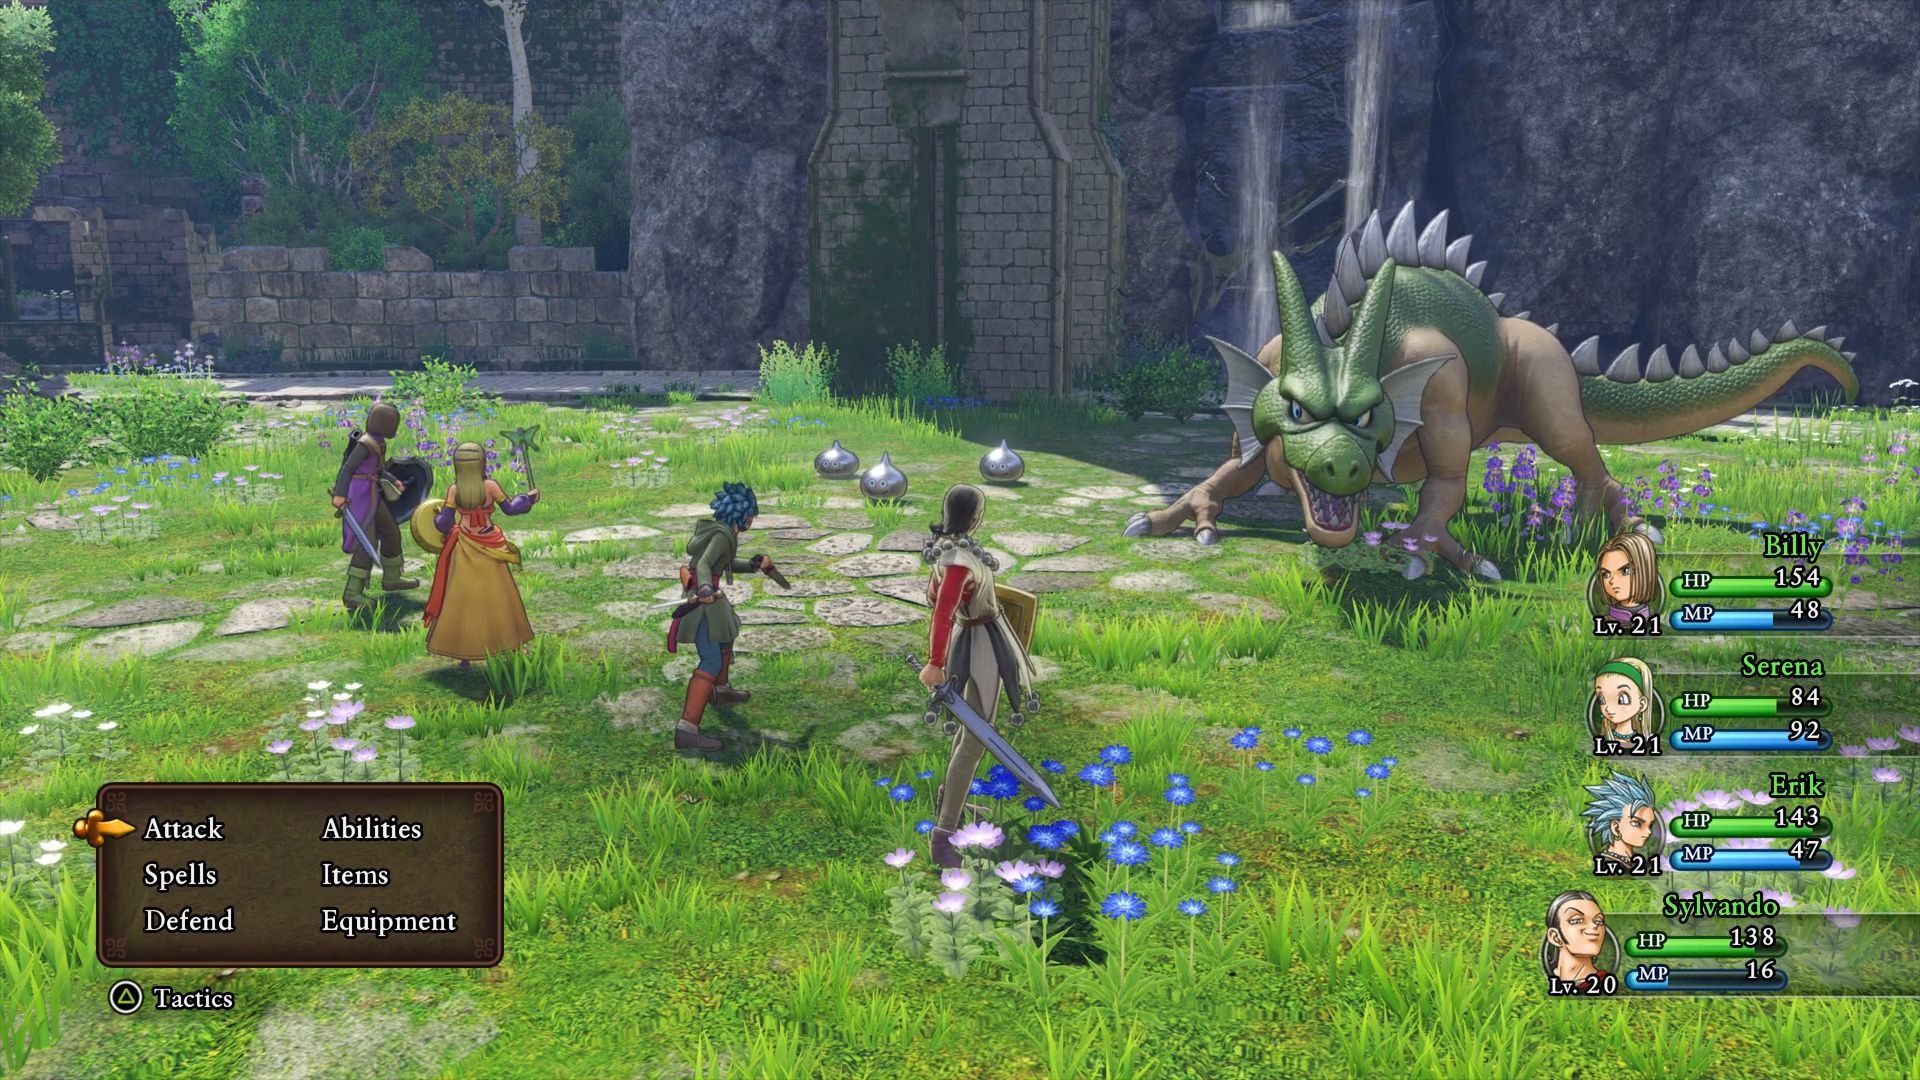 Dragon Quest Xi Best Party Guide The Best Party Builds And Setups